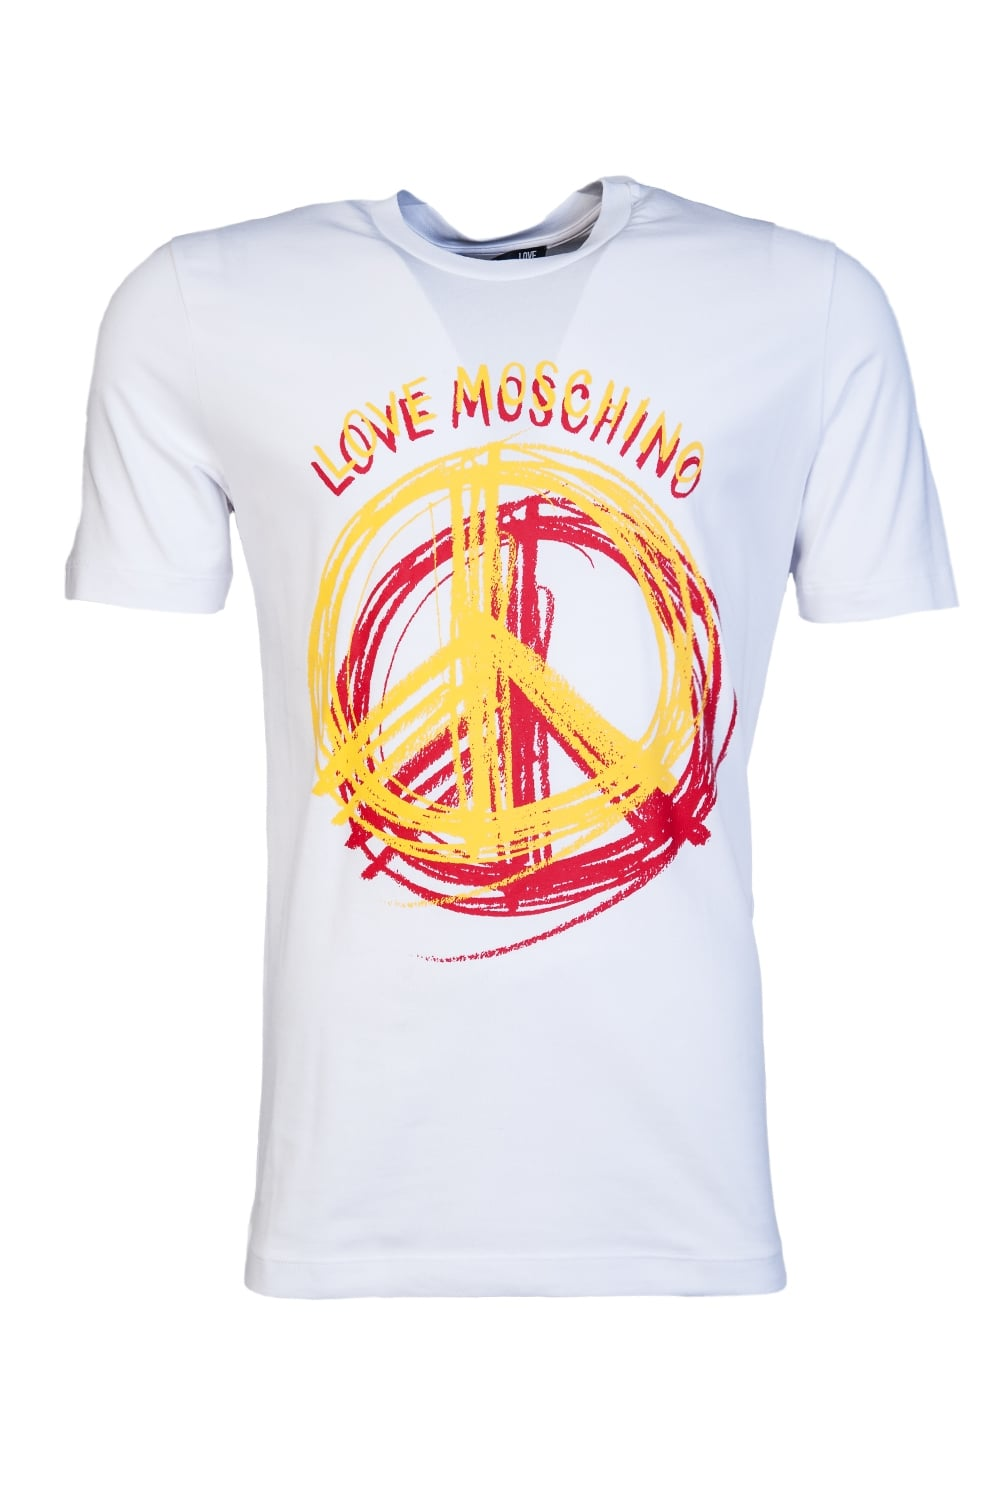 Moschino T Shirt M4 731 29 E 1514-A00 - Clothing from Sage ...